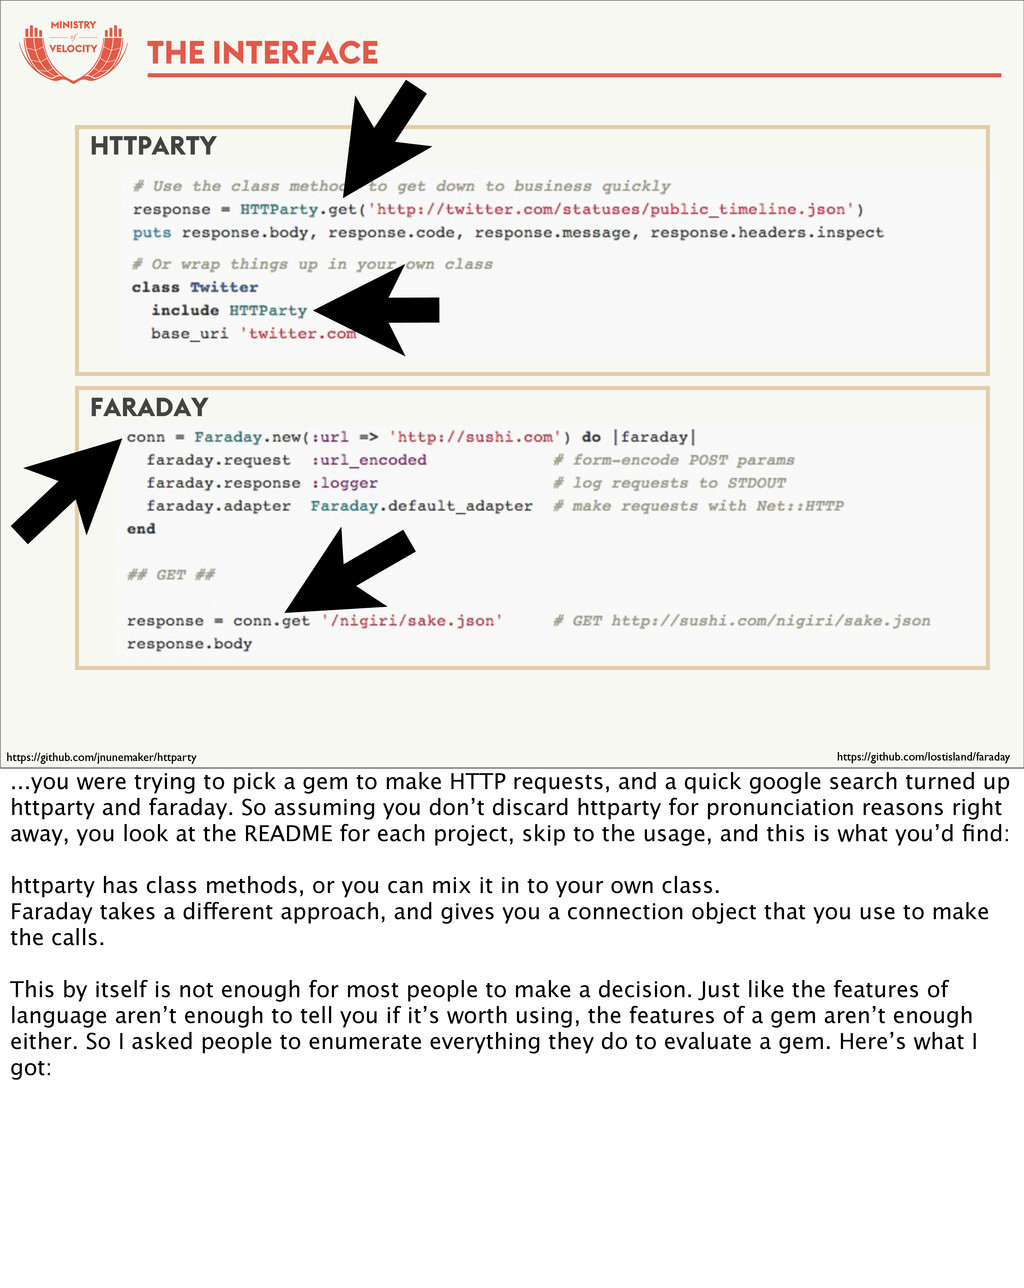 of THE INTERFACE HTTPARTY FARADAY https://githu...